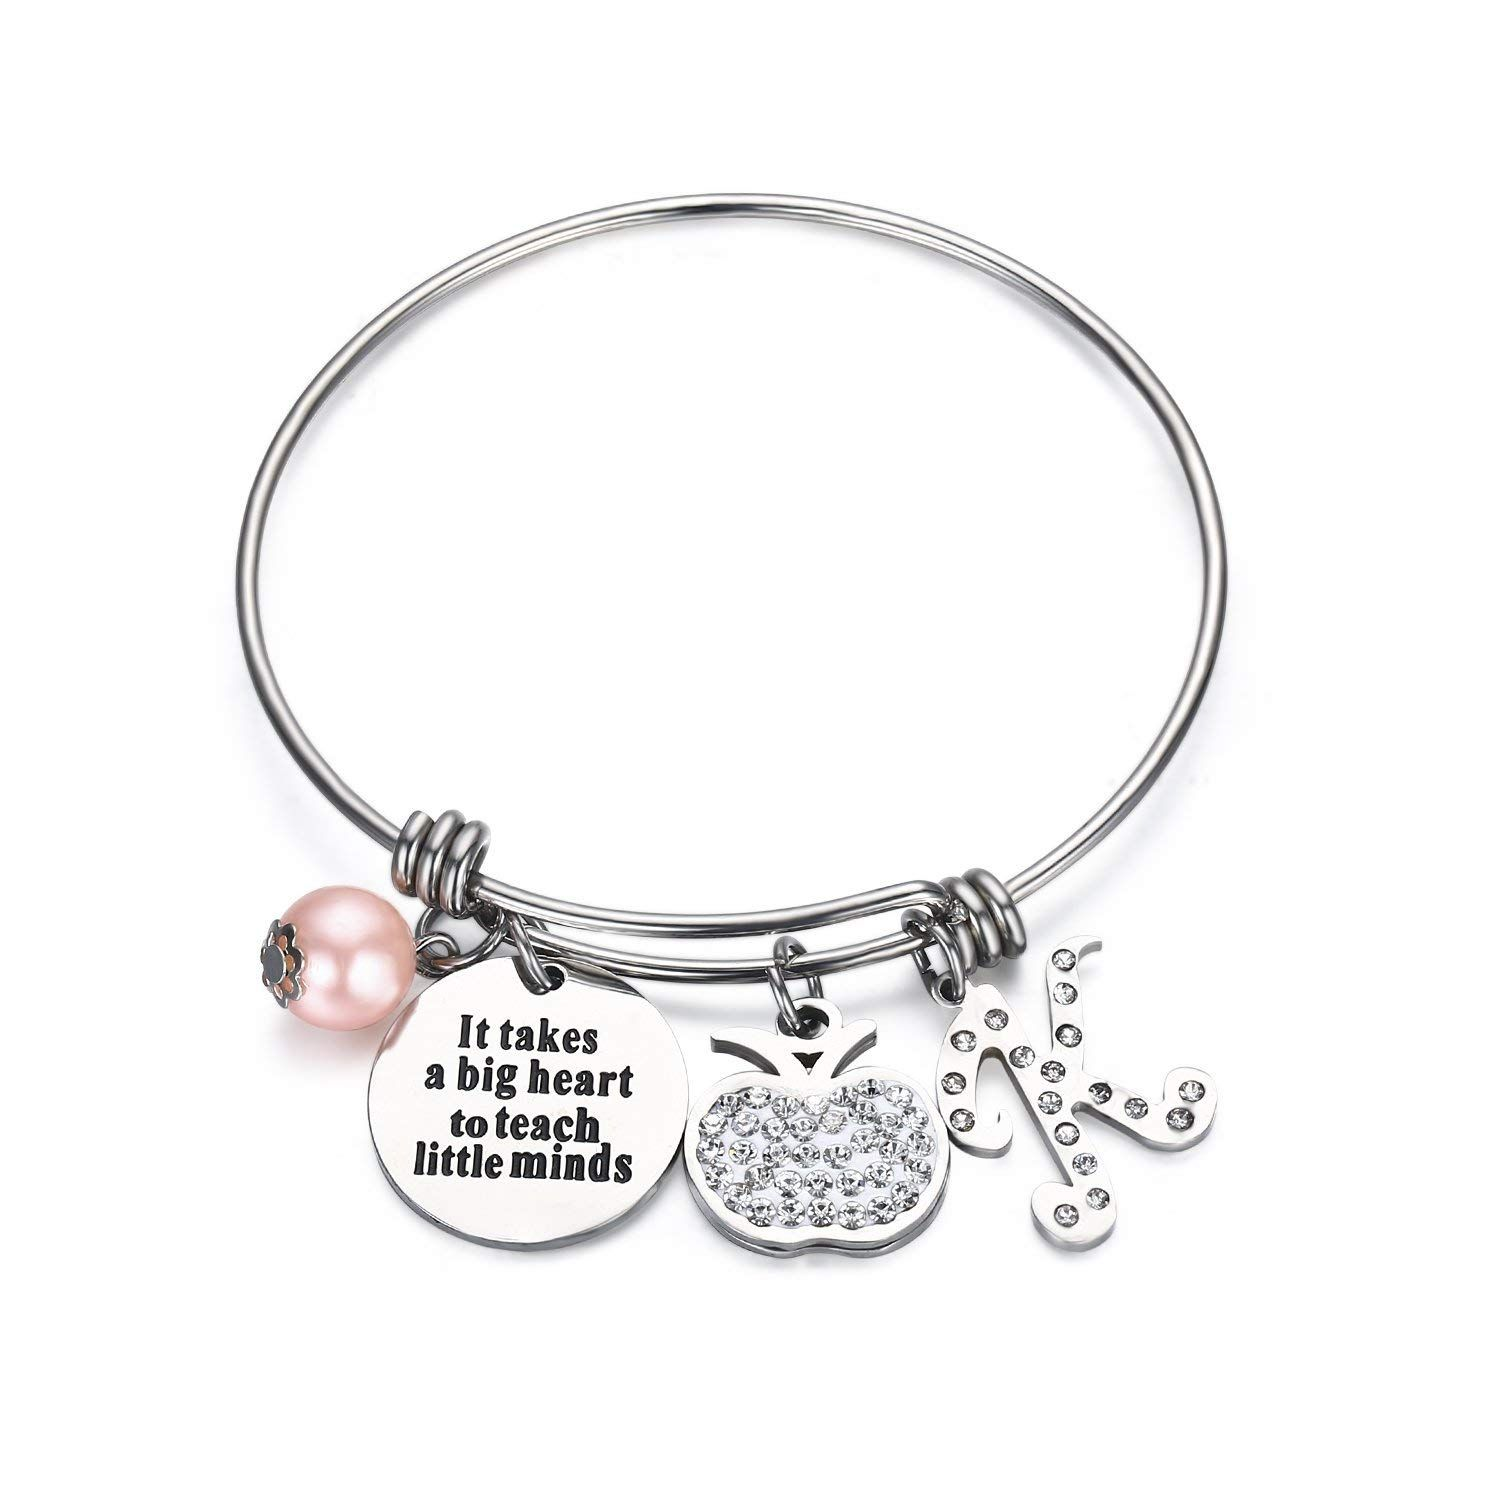 Udobuy Teacher Bangle Bracelet-Teacher Gift, Show